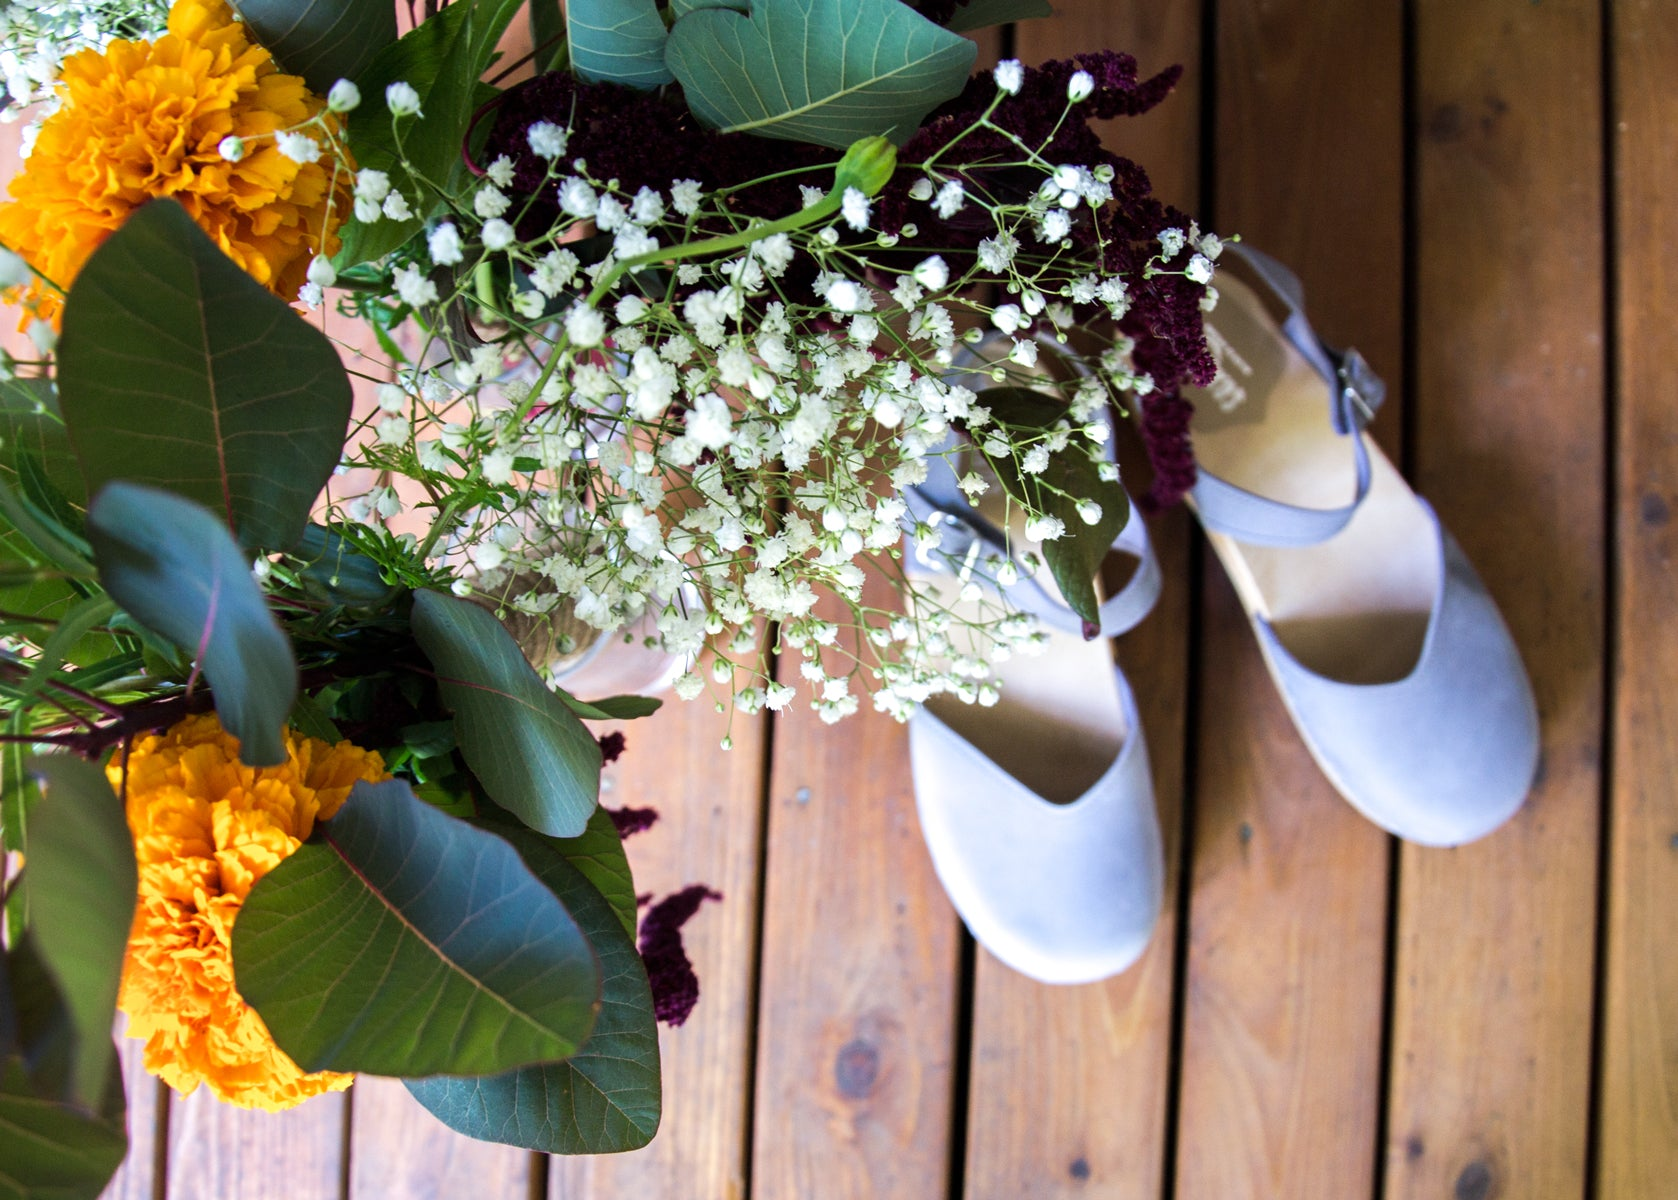 The Perfect Couple: Weddings and Clogs